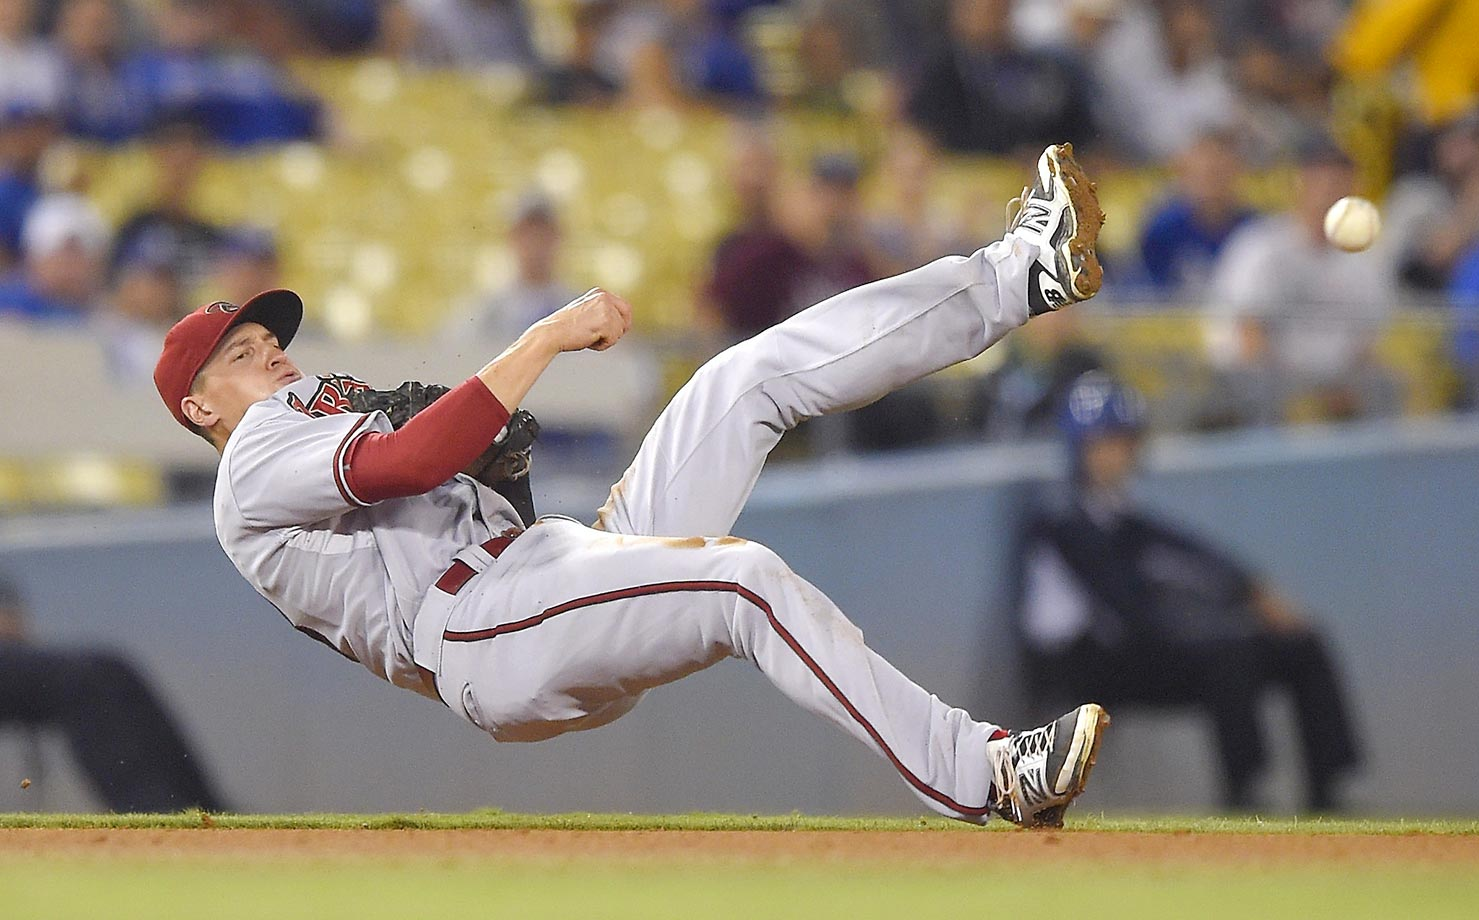 Nick Ahmed of the Arizona Diamondbacks makes the throw for the out against Chris Heisey of the Los Angeles Dodgers.